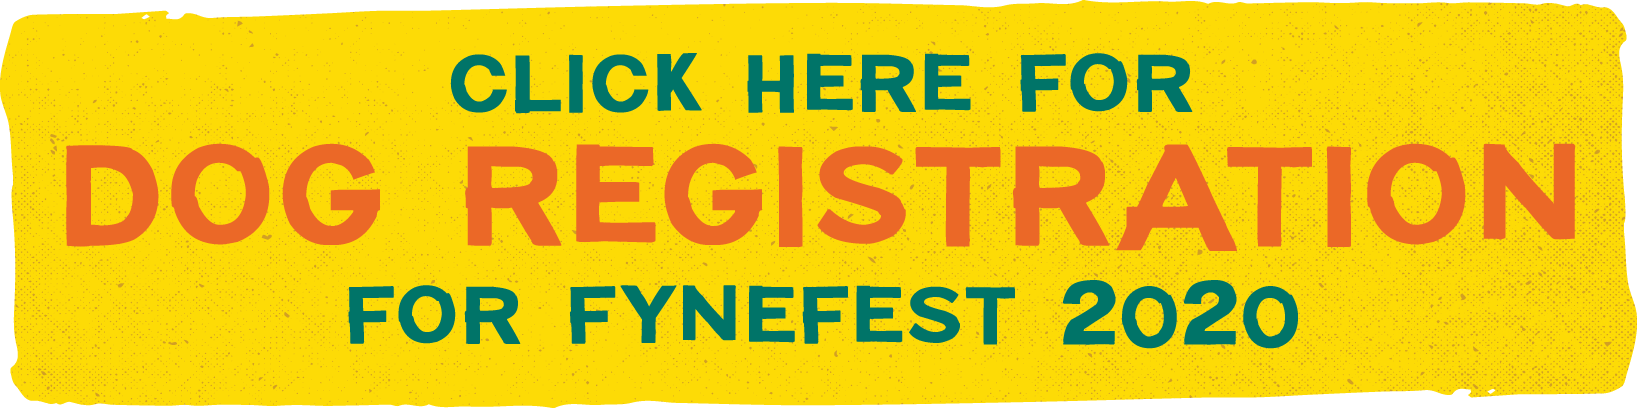 Click Here To Register Dog For FyneFest 2020